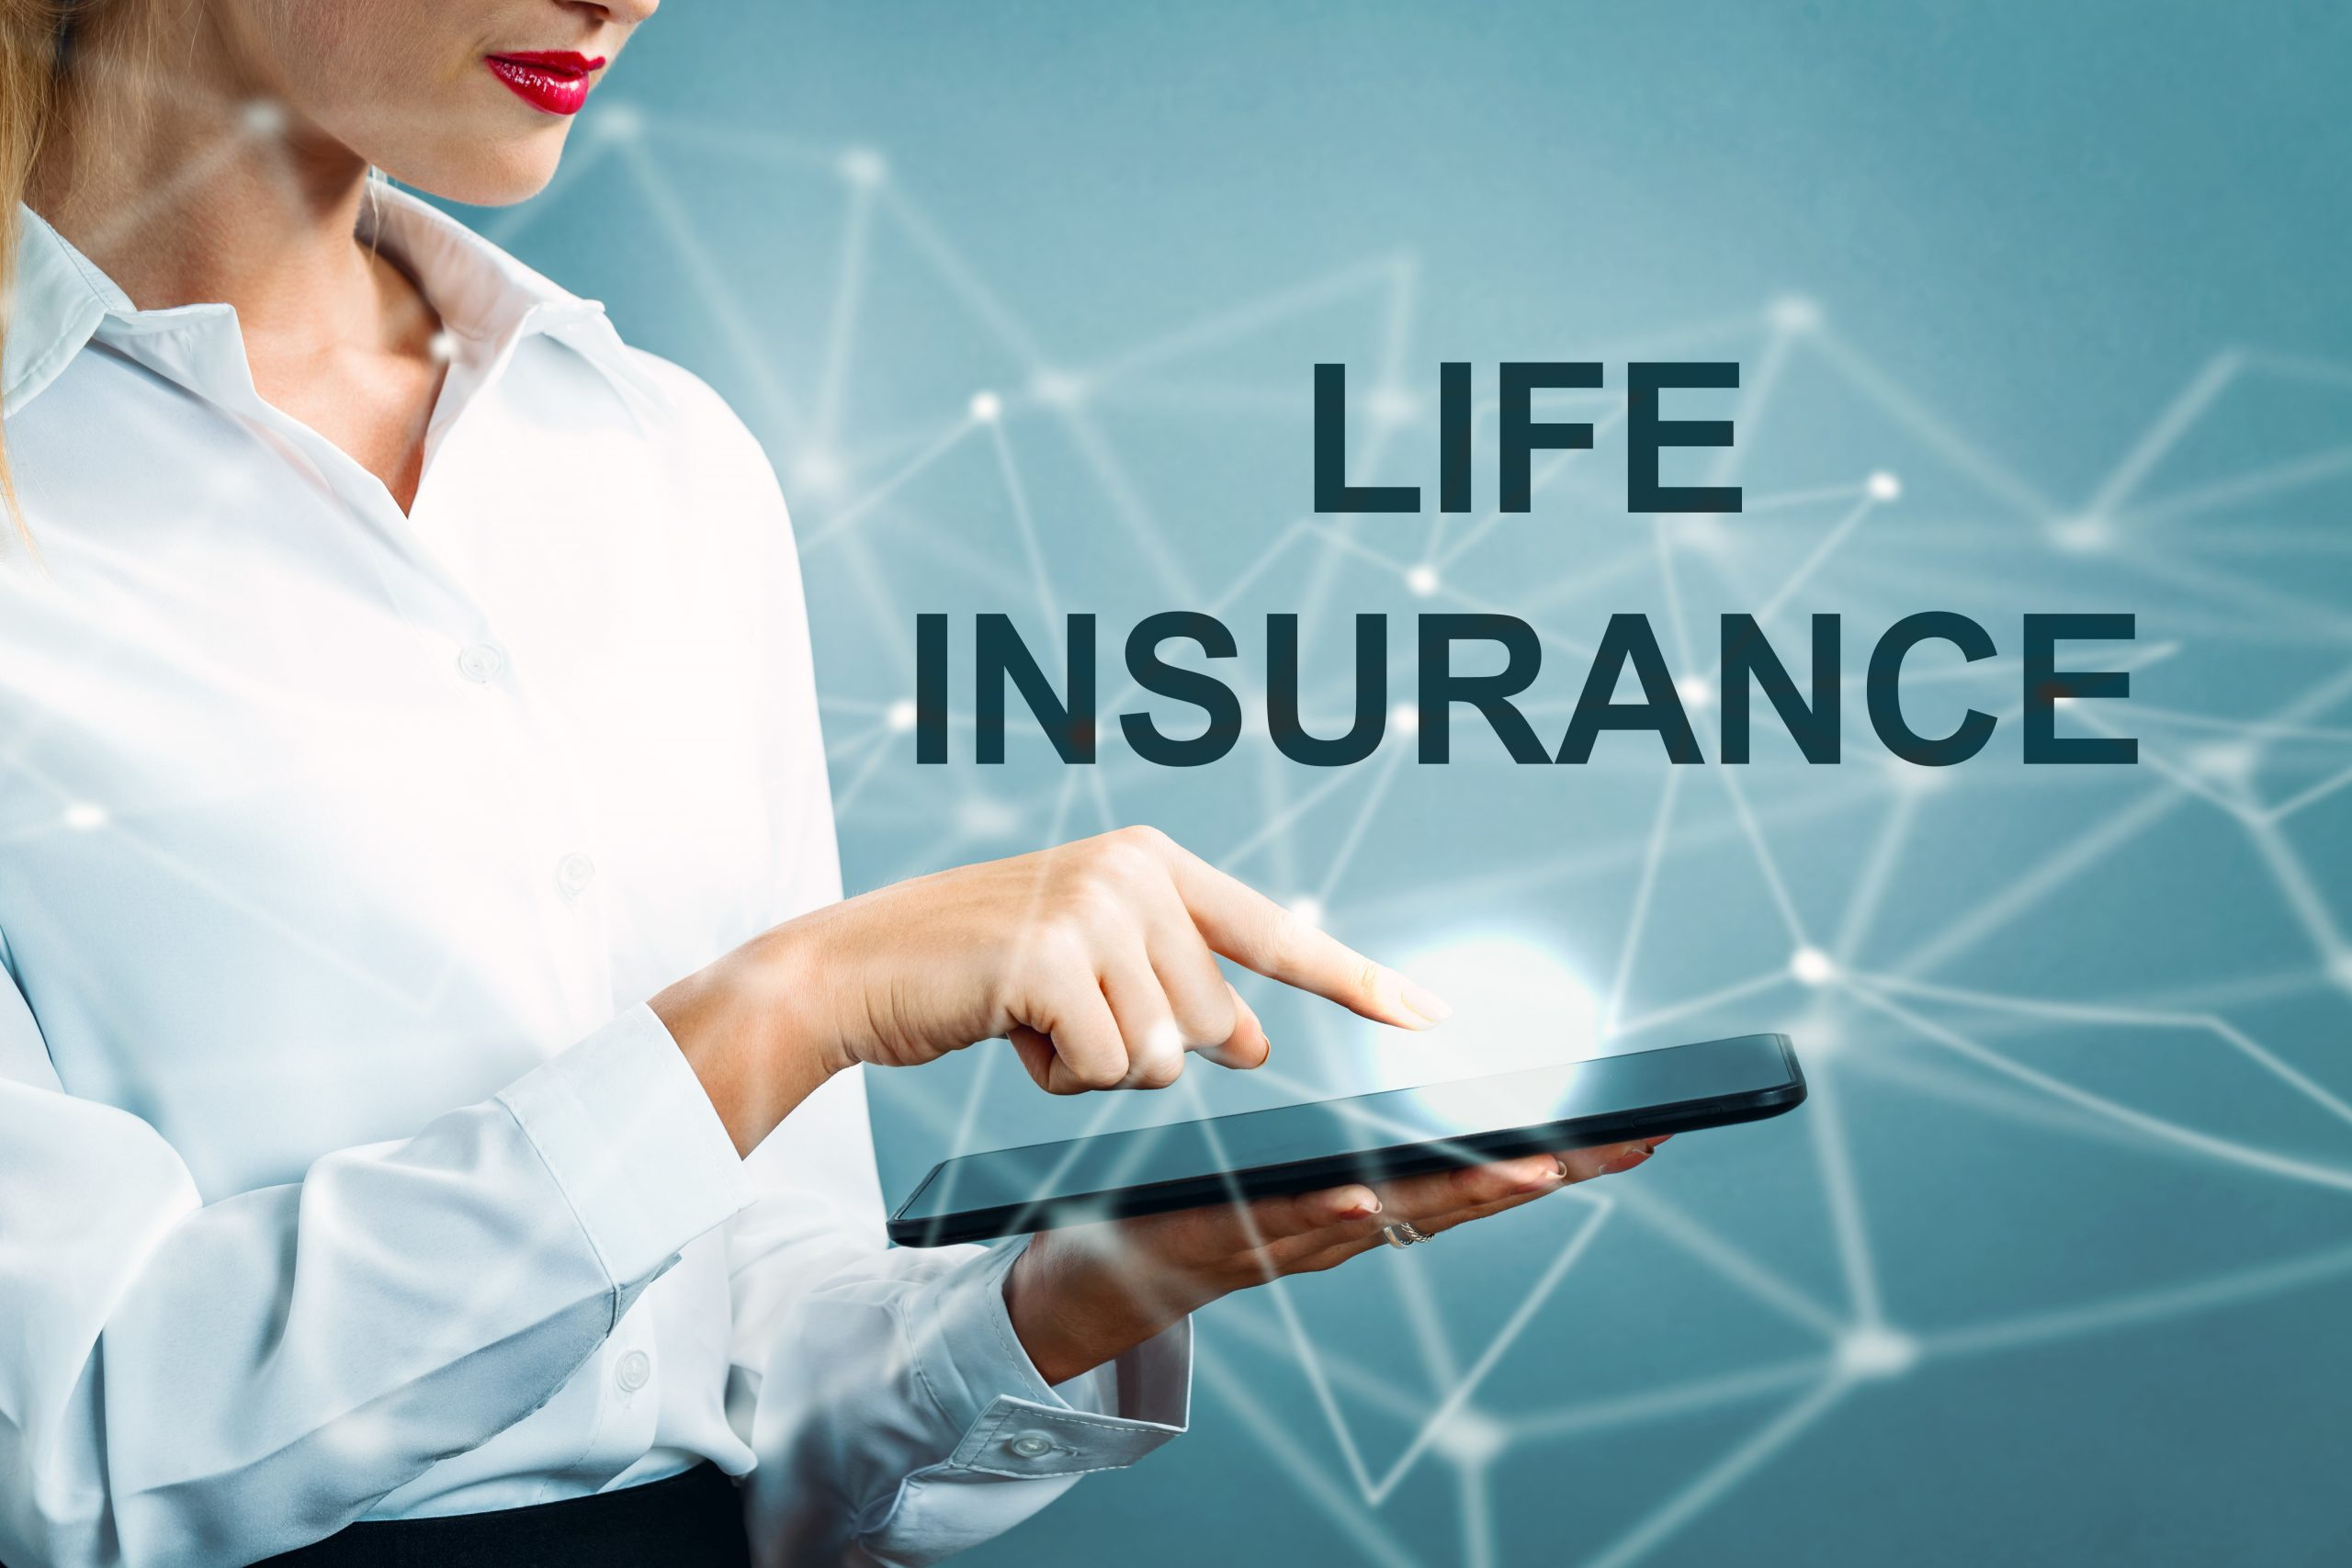 Insure Your Health and Your Life in One Place